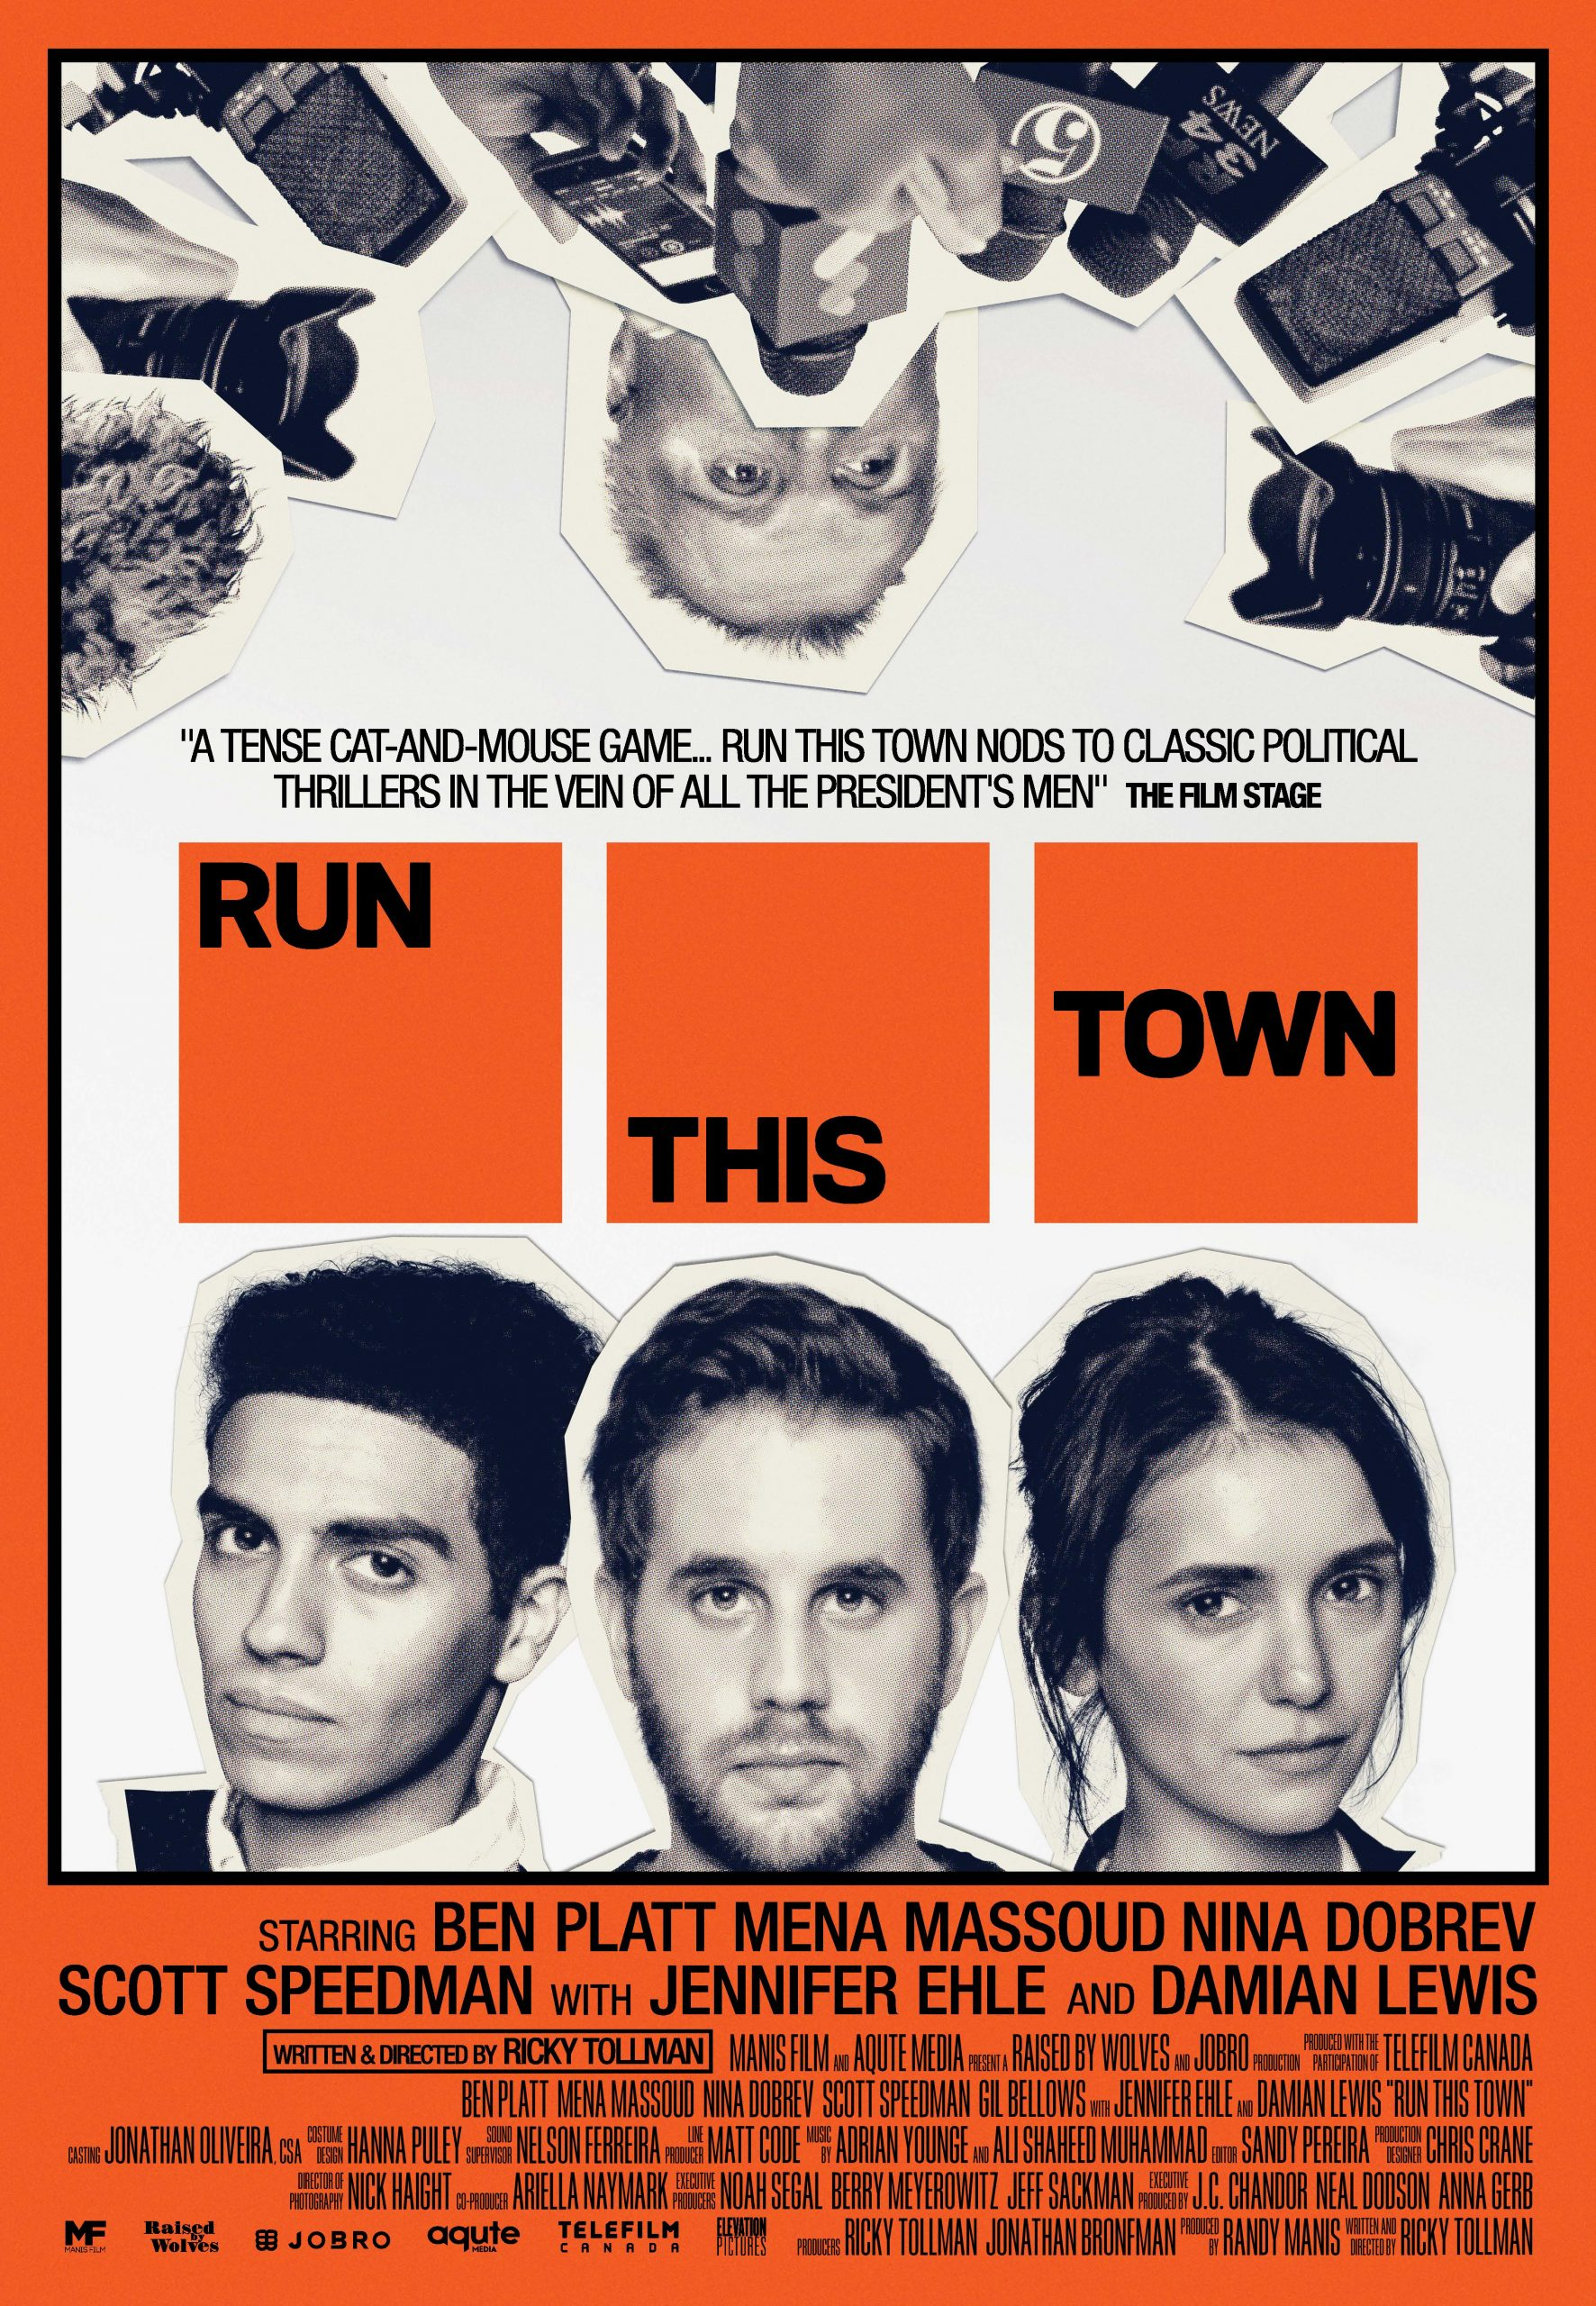 Run This Town Trailer: Rob Ford Crack Scandal Coming to the Big Screen